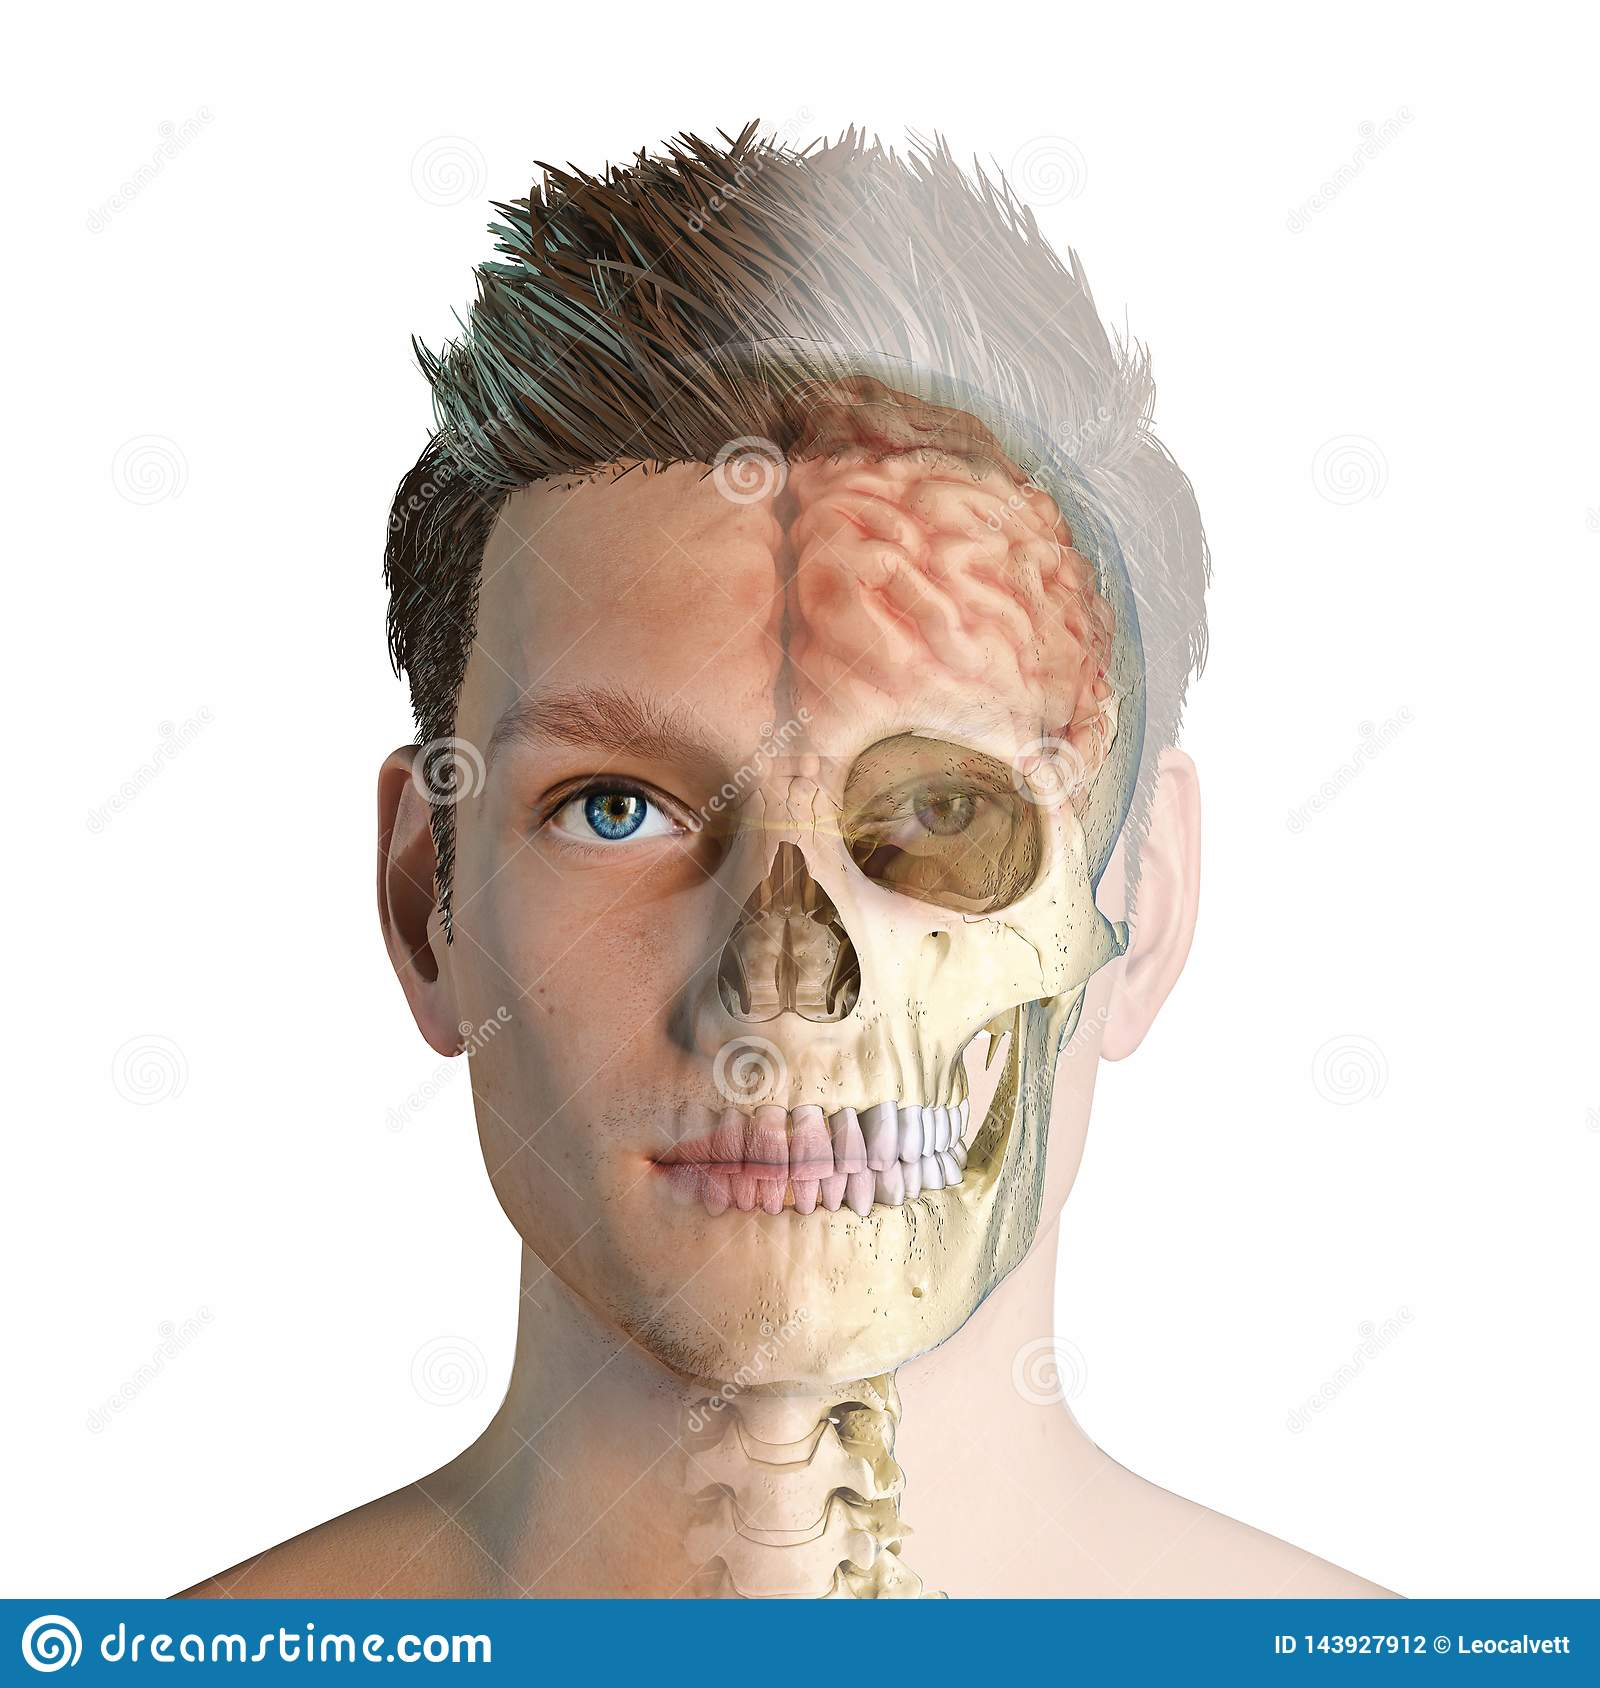 Man head with skull and brain ghosted